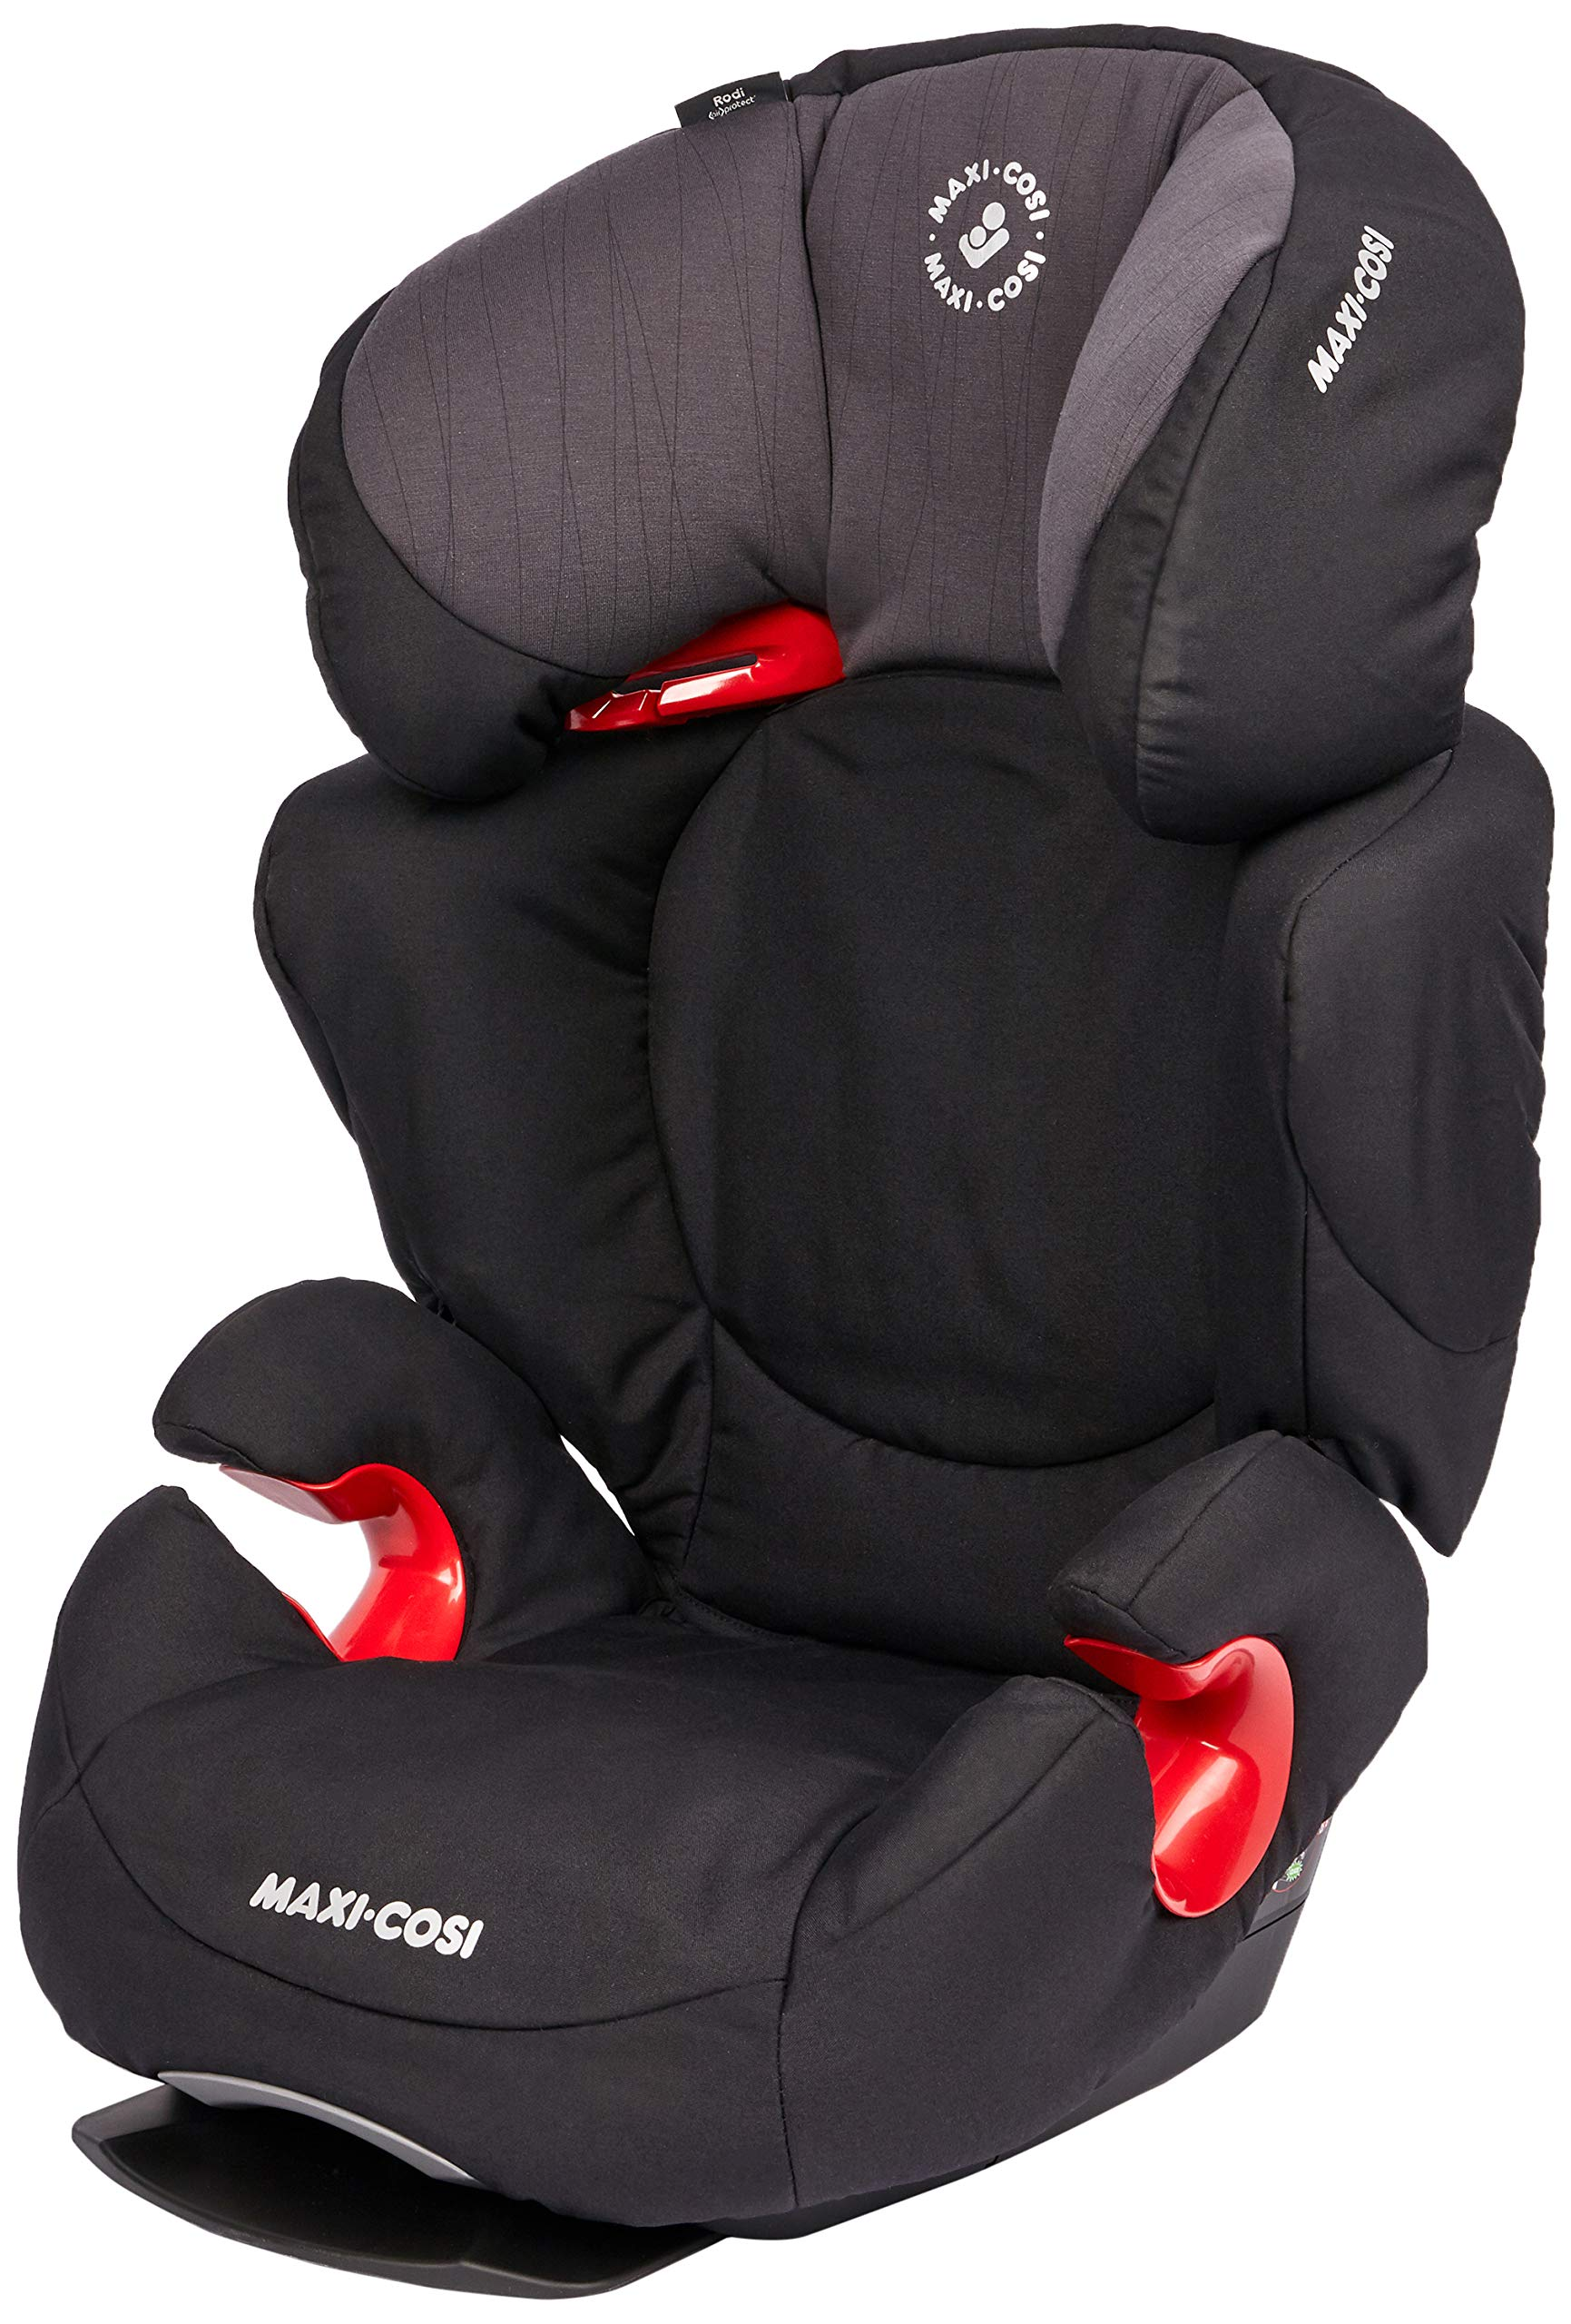 Maxi-Cosi Rodi AirProtect Child Car Seat, Lightweight Highback Booster, 3.5-12 Years, 15-36 kg, Frequency Black Maxi-Cosi Child car seat, suitable from 3.5 to 12 years (15 - 36kg) Easily install this safe car seat with a 3-point seat belt and attach the anchorage point in the head rest through your cars head rest Patented air protect technology in headrest reduces the risk of head and neck injuries up to 20 percent 1